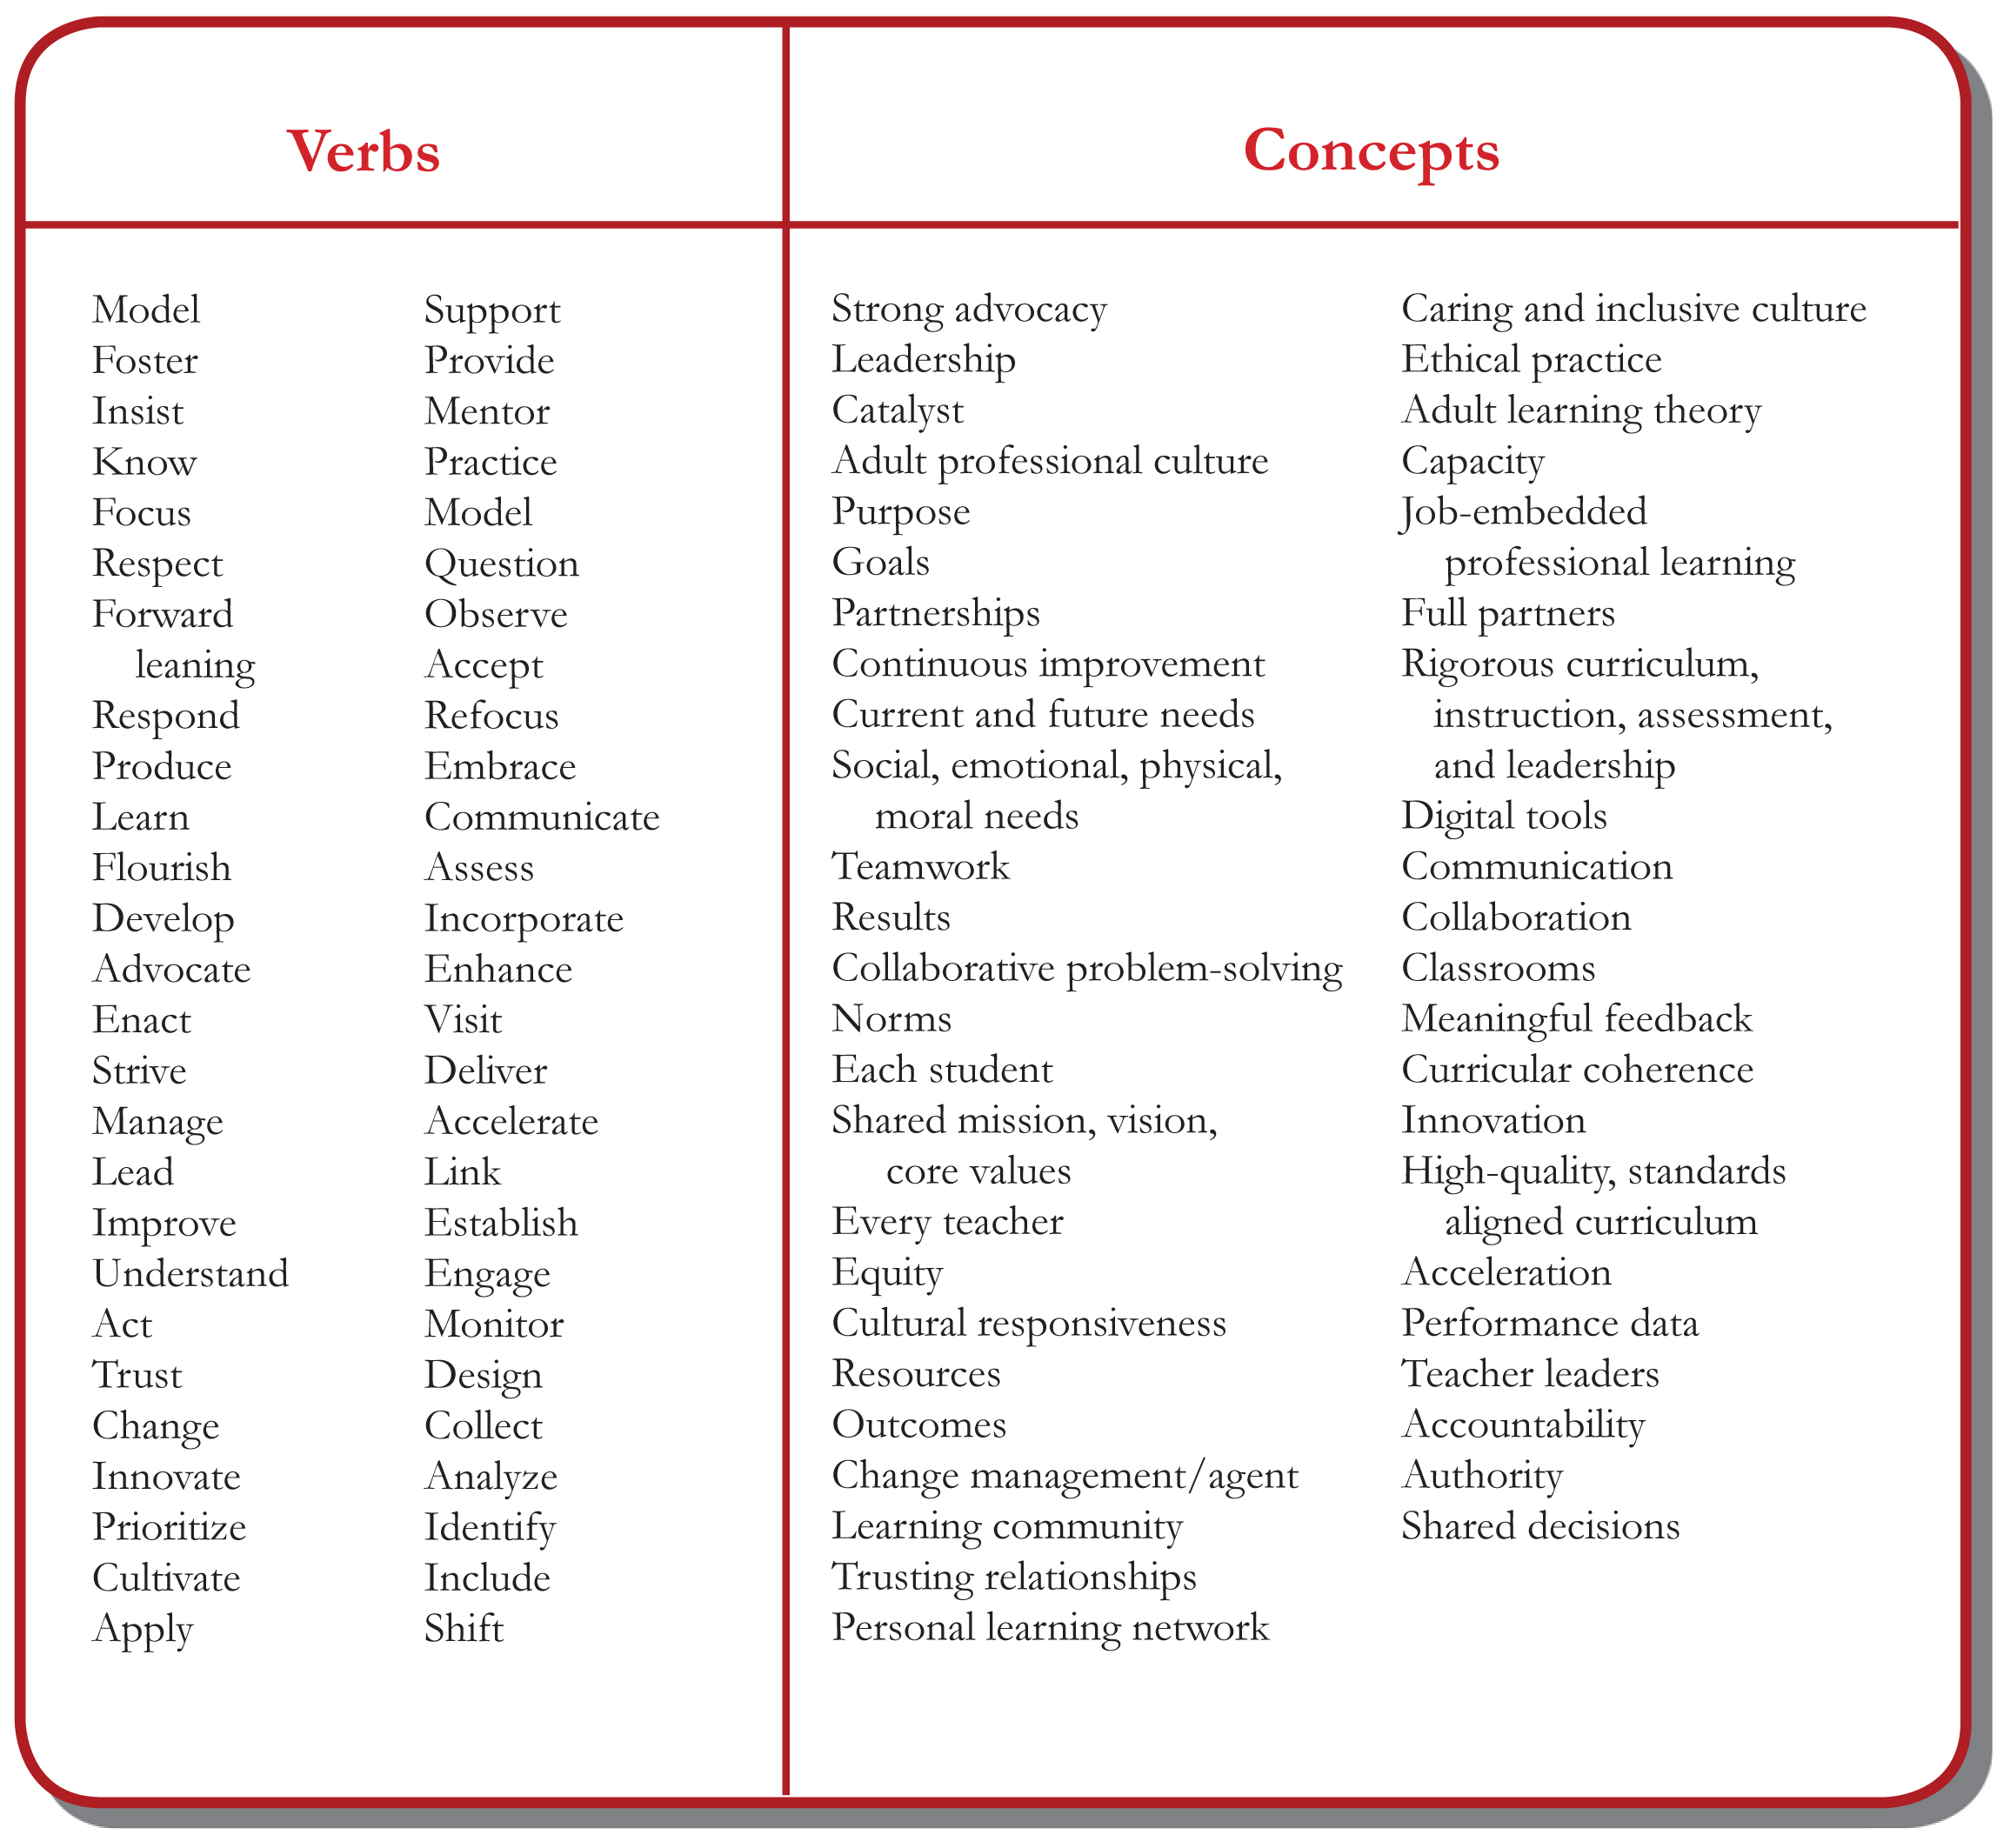 Verbs and Concepts